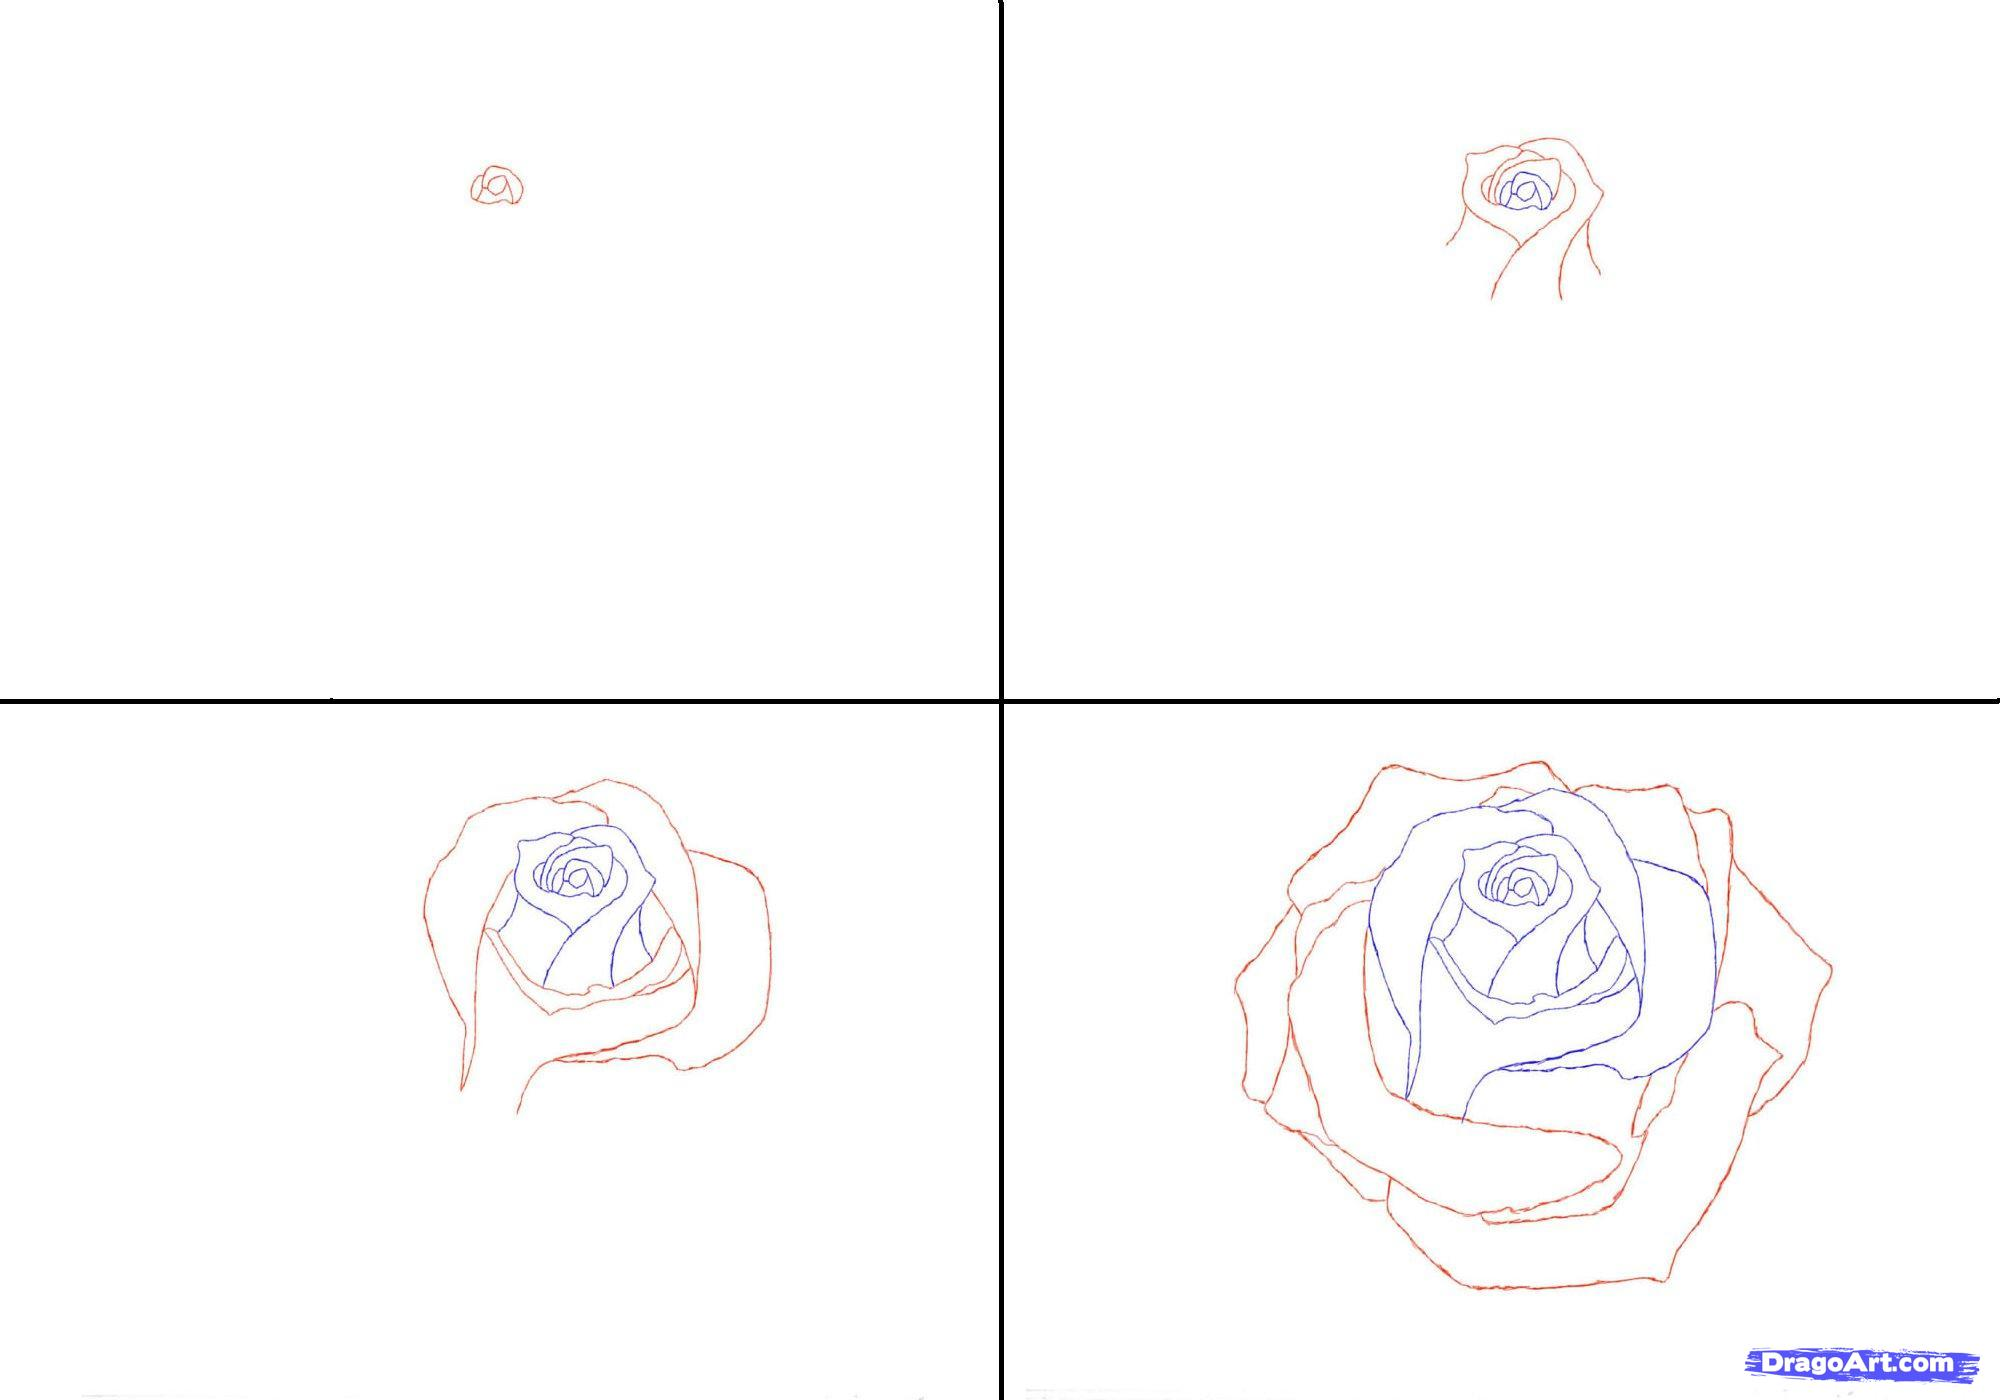 Drawn rose step by step Rose in 1 rose to